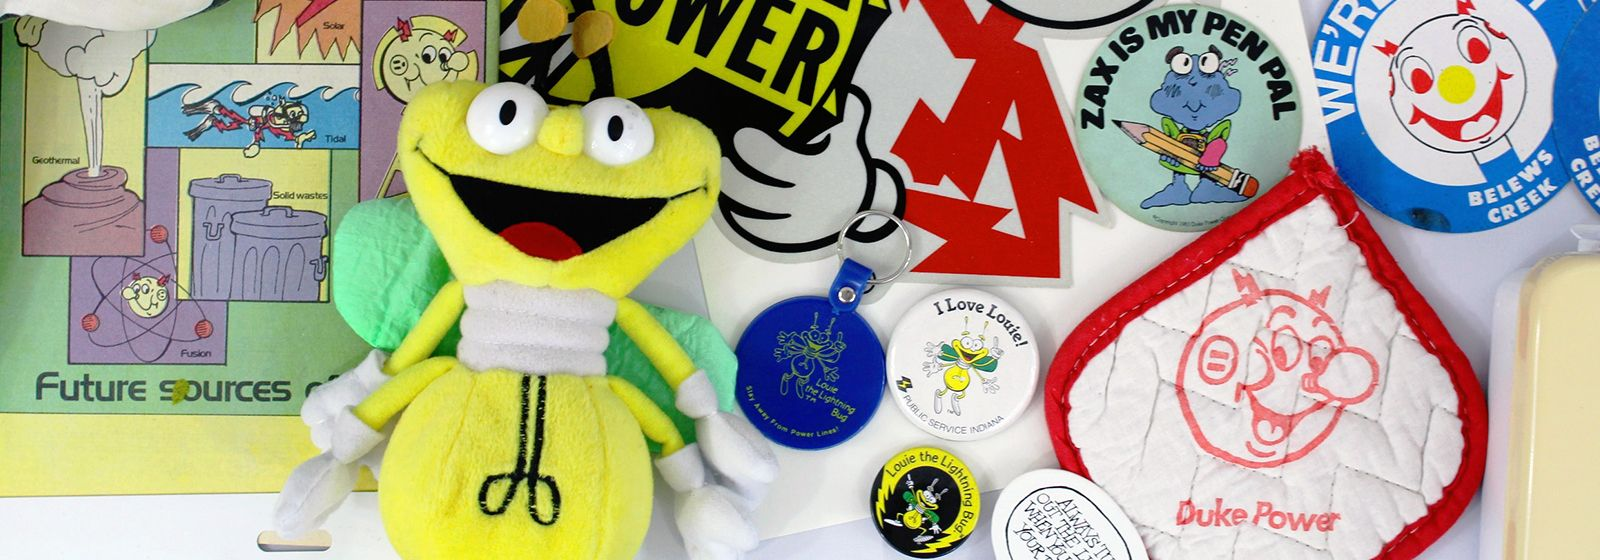 Quiz: Do you recognize these energy company mascots?